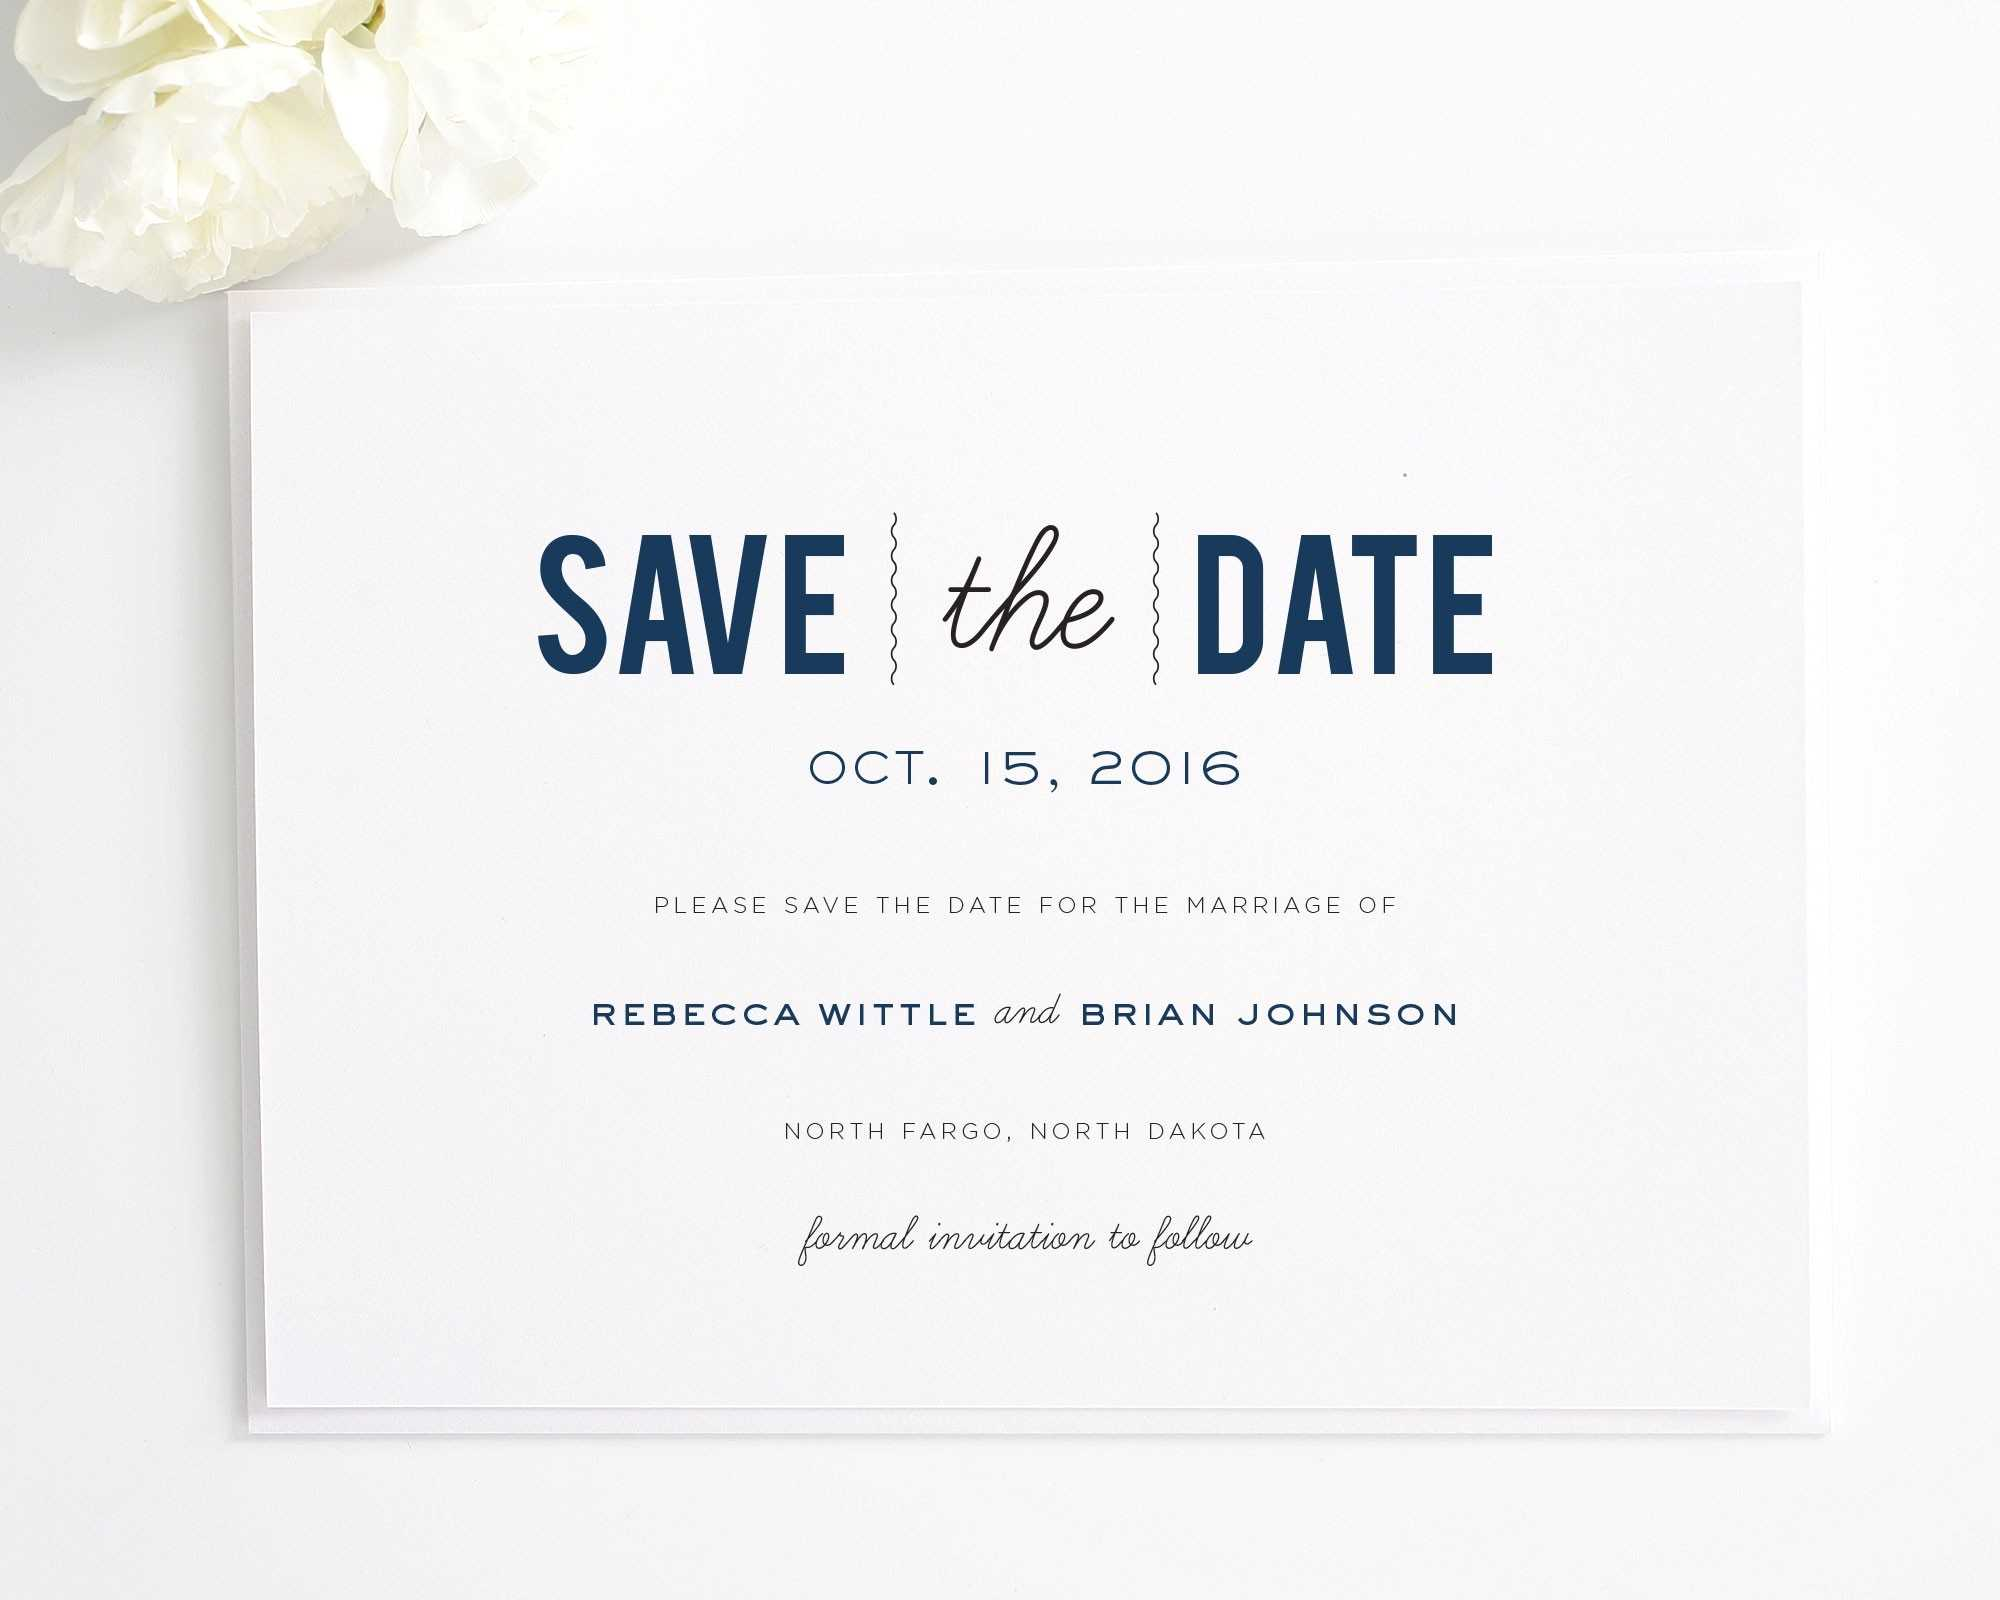 003 Save The Date Template Word Precious Sample Retire Party intended for Save The Date Templates Word